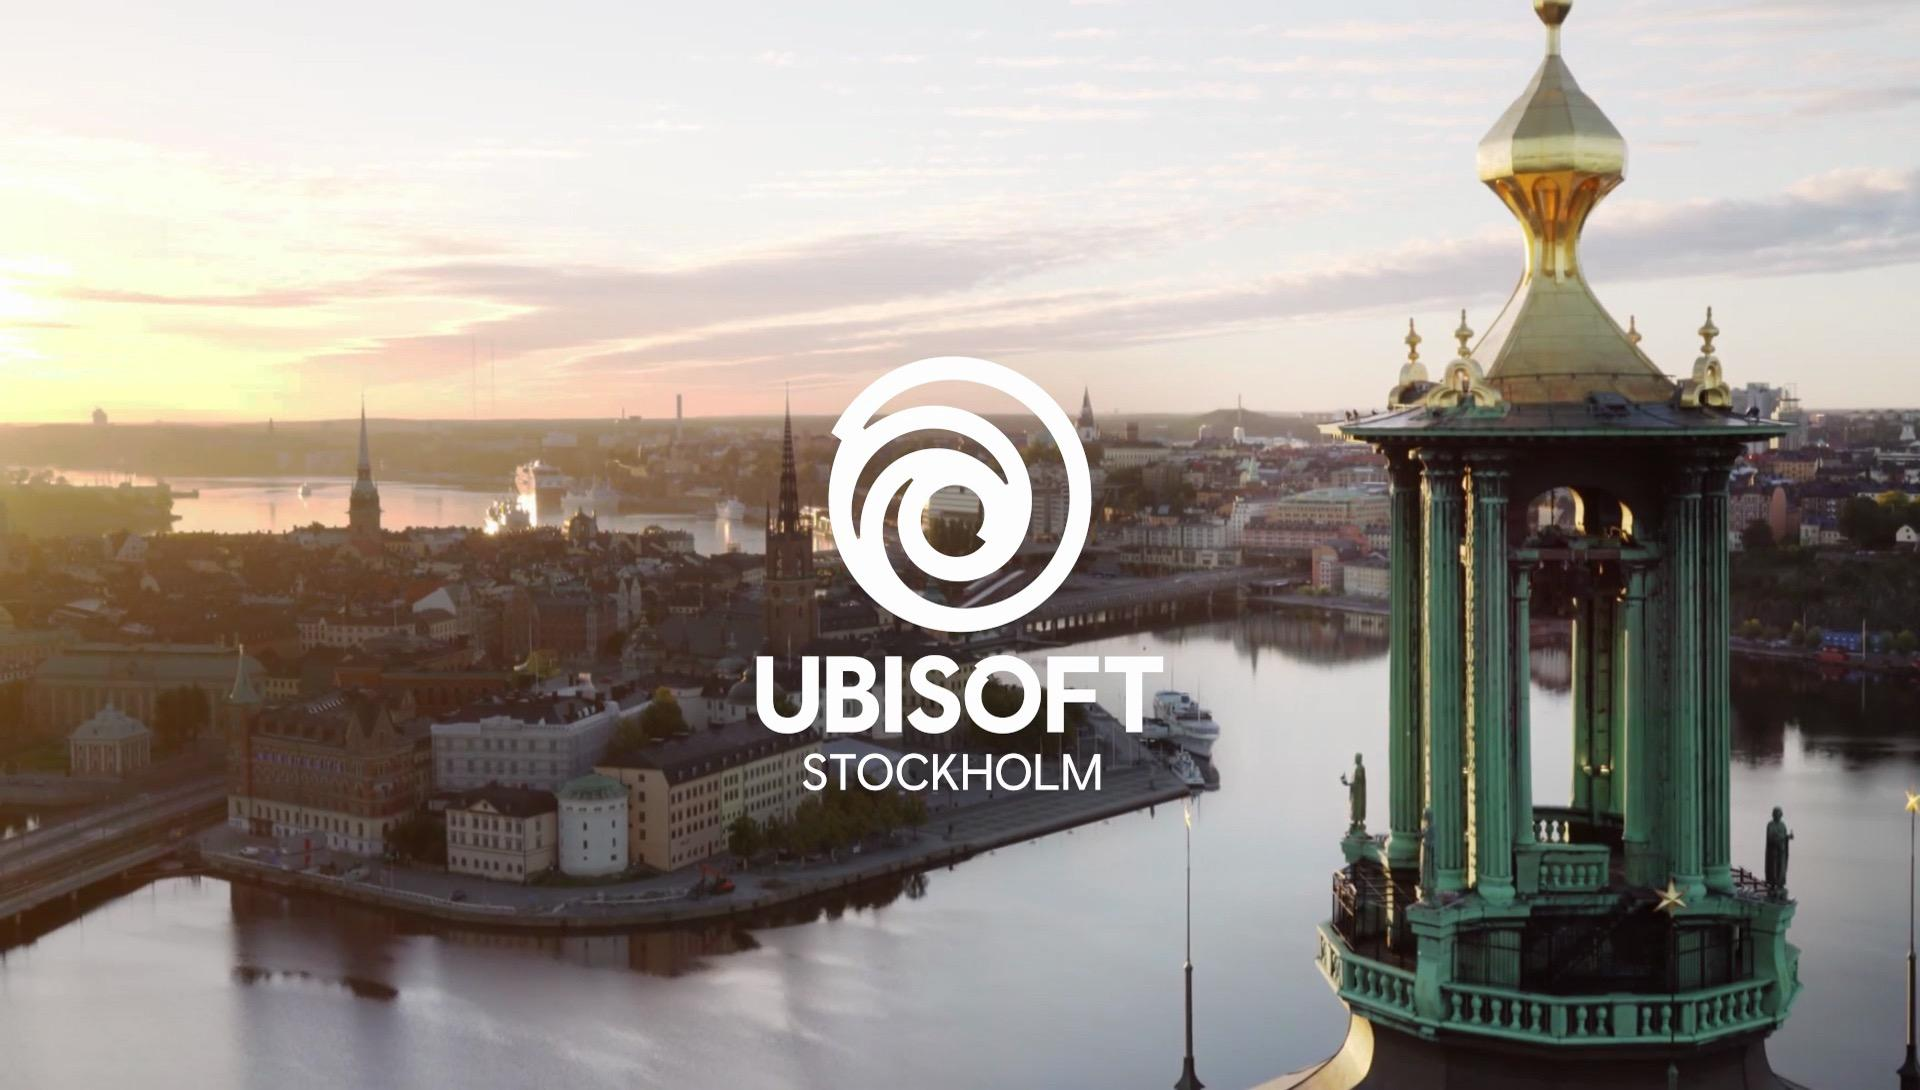 Ubisoft to Open New Studio in Stockholm